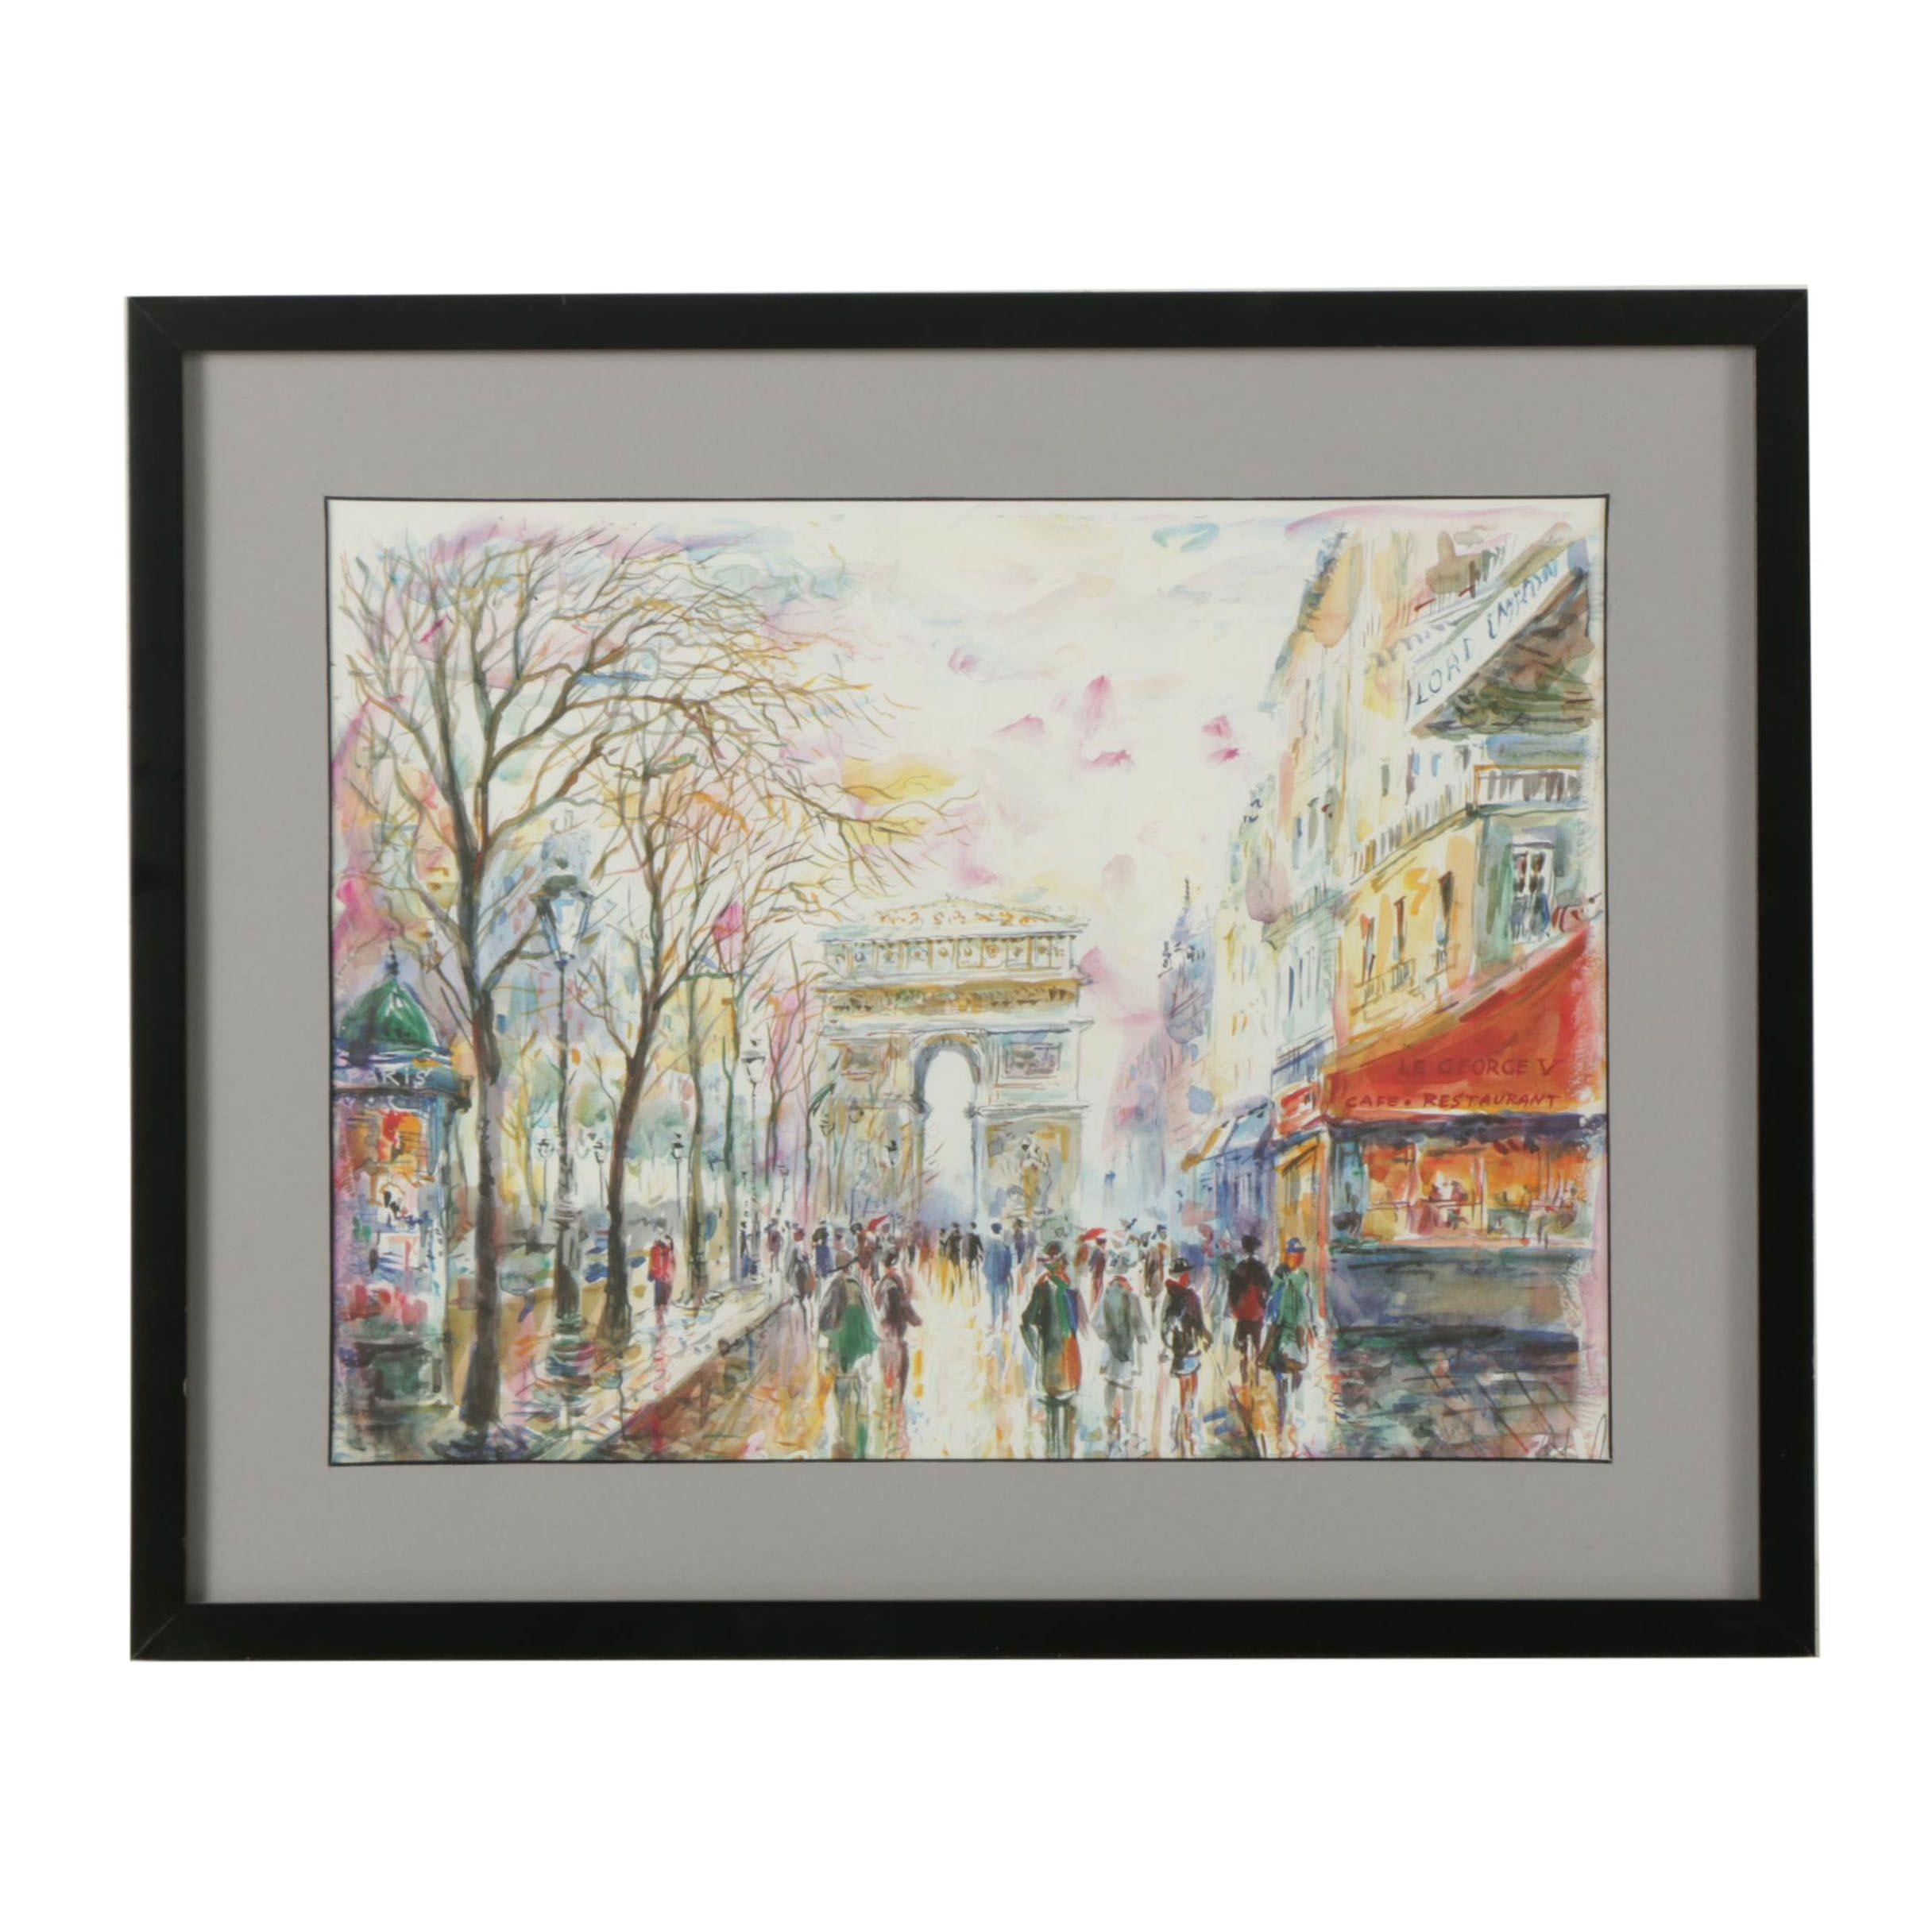 Embellished Offset Lithograph on Paper Parisian Street Scene